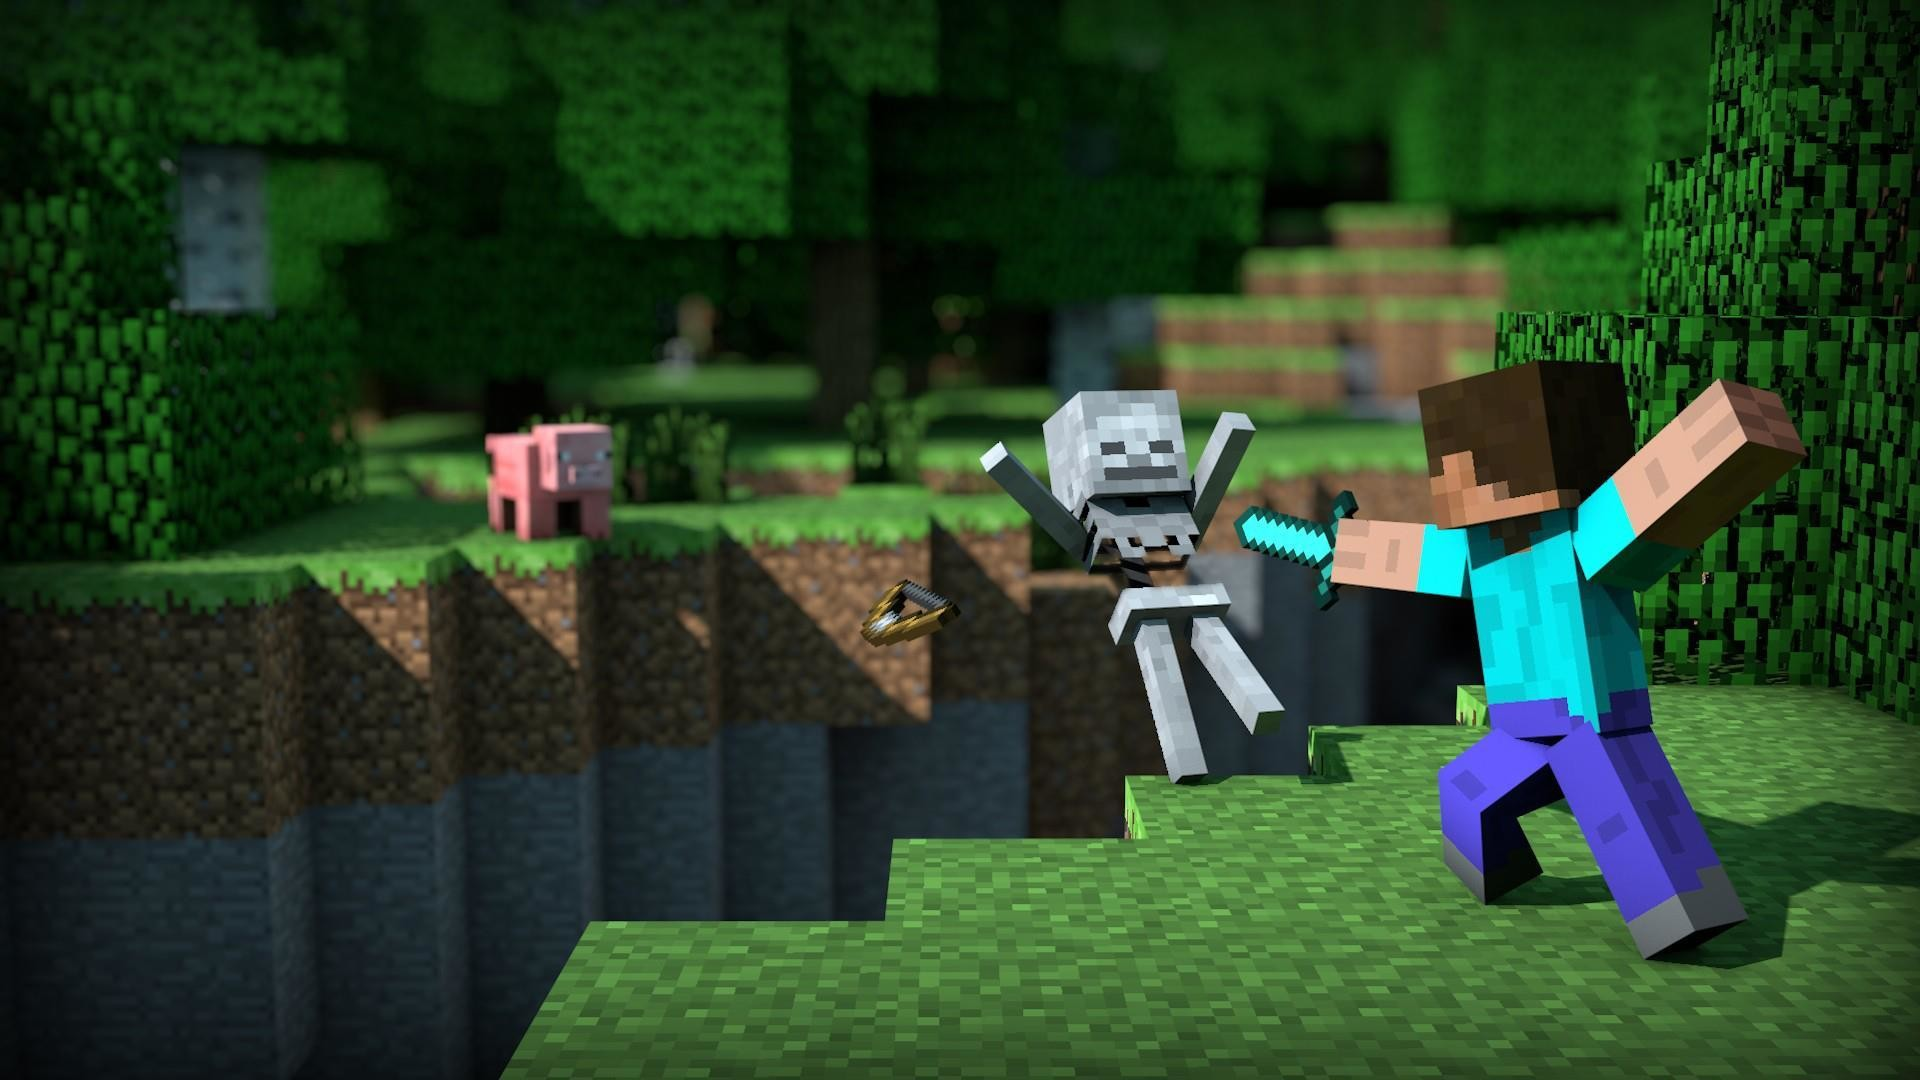 1920x1080 Minecraft HD Wallpapers - Page 2